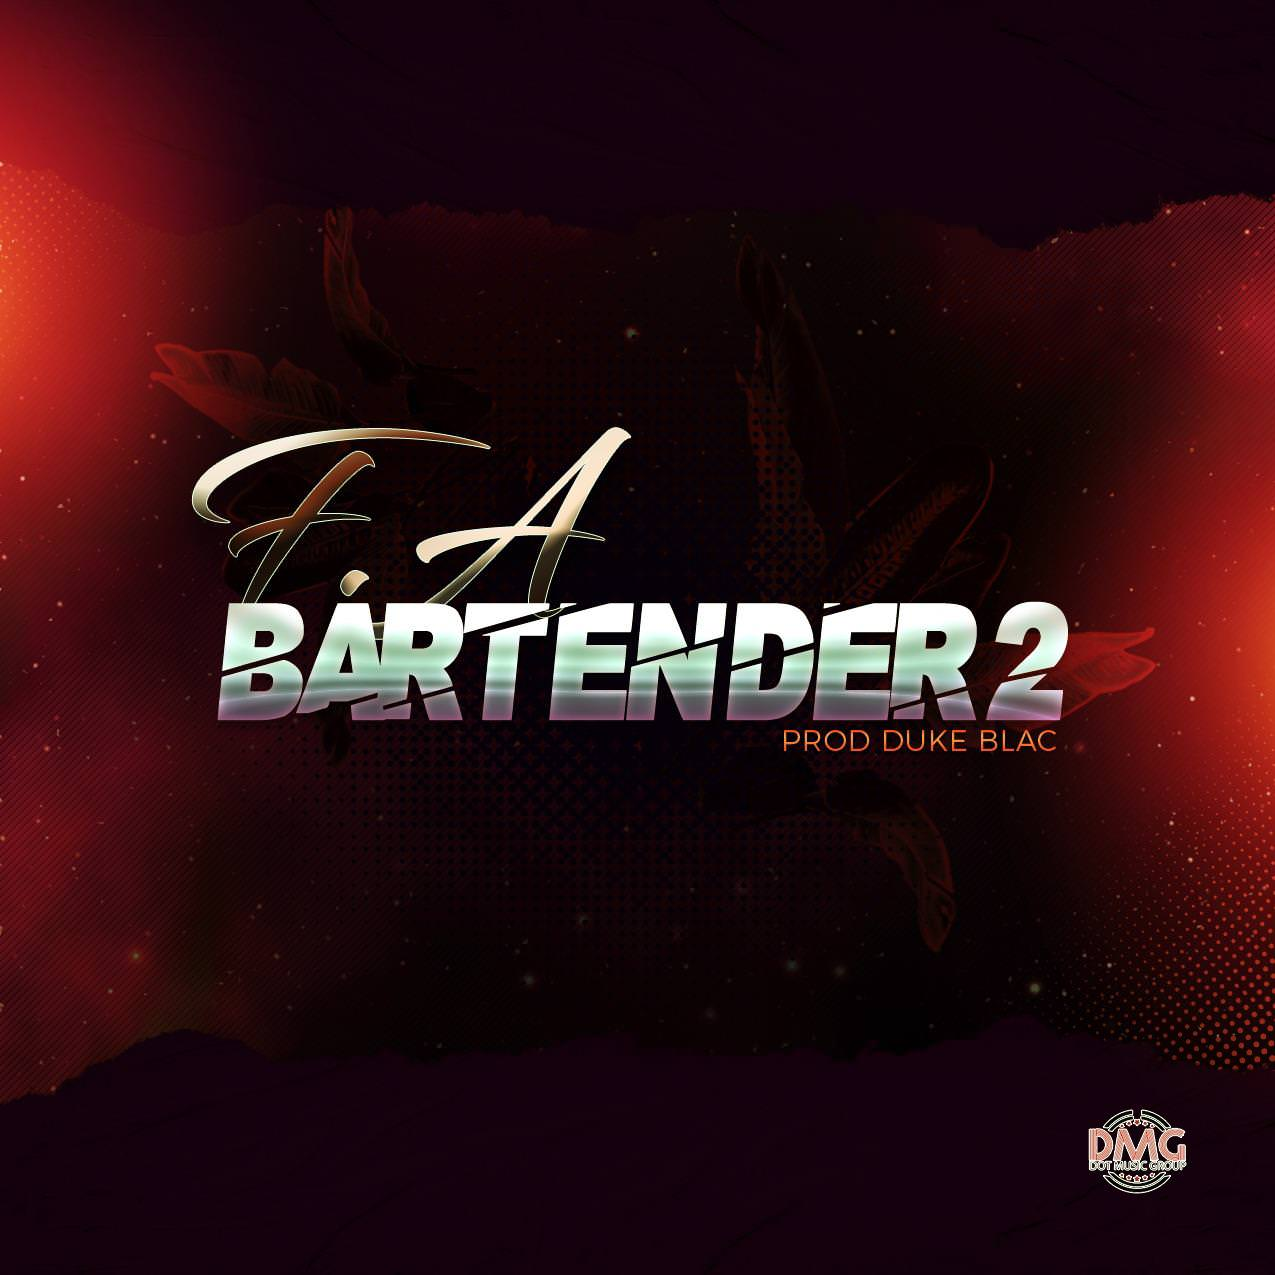 """Speaking to Liberian Afrobeat Artist F.A About His Newest Single """"Bartender 2"""""""